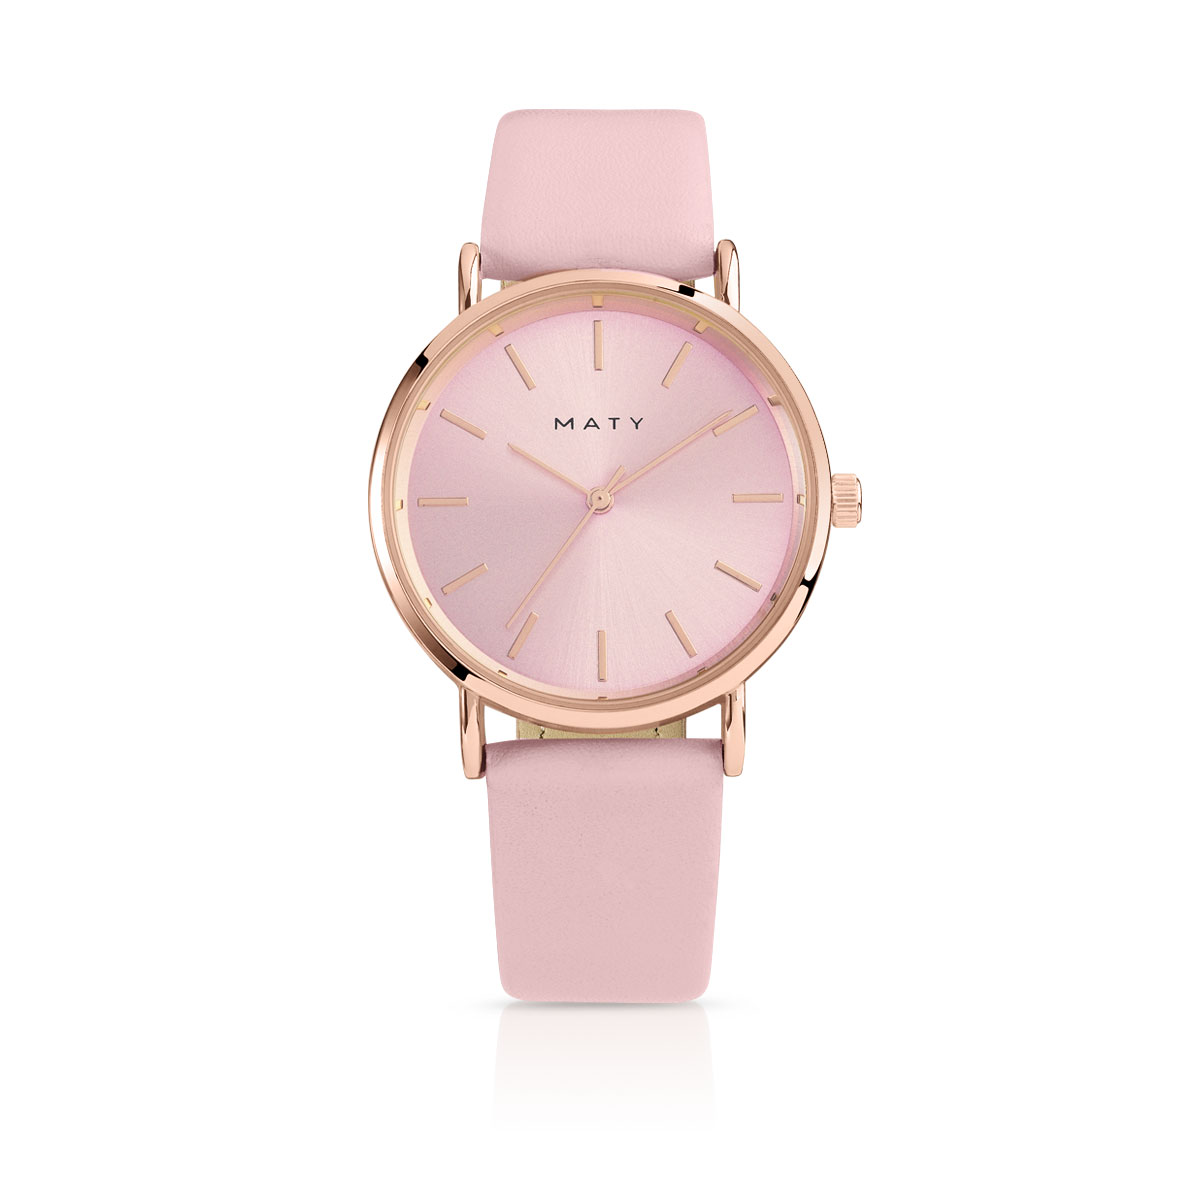 montre en or rose